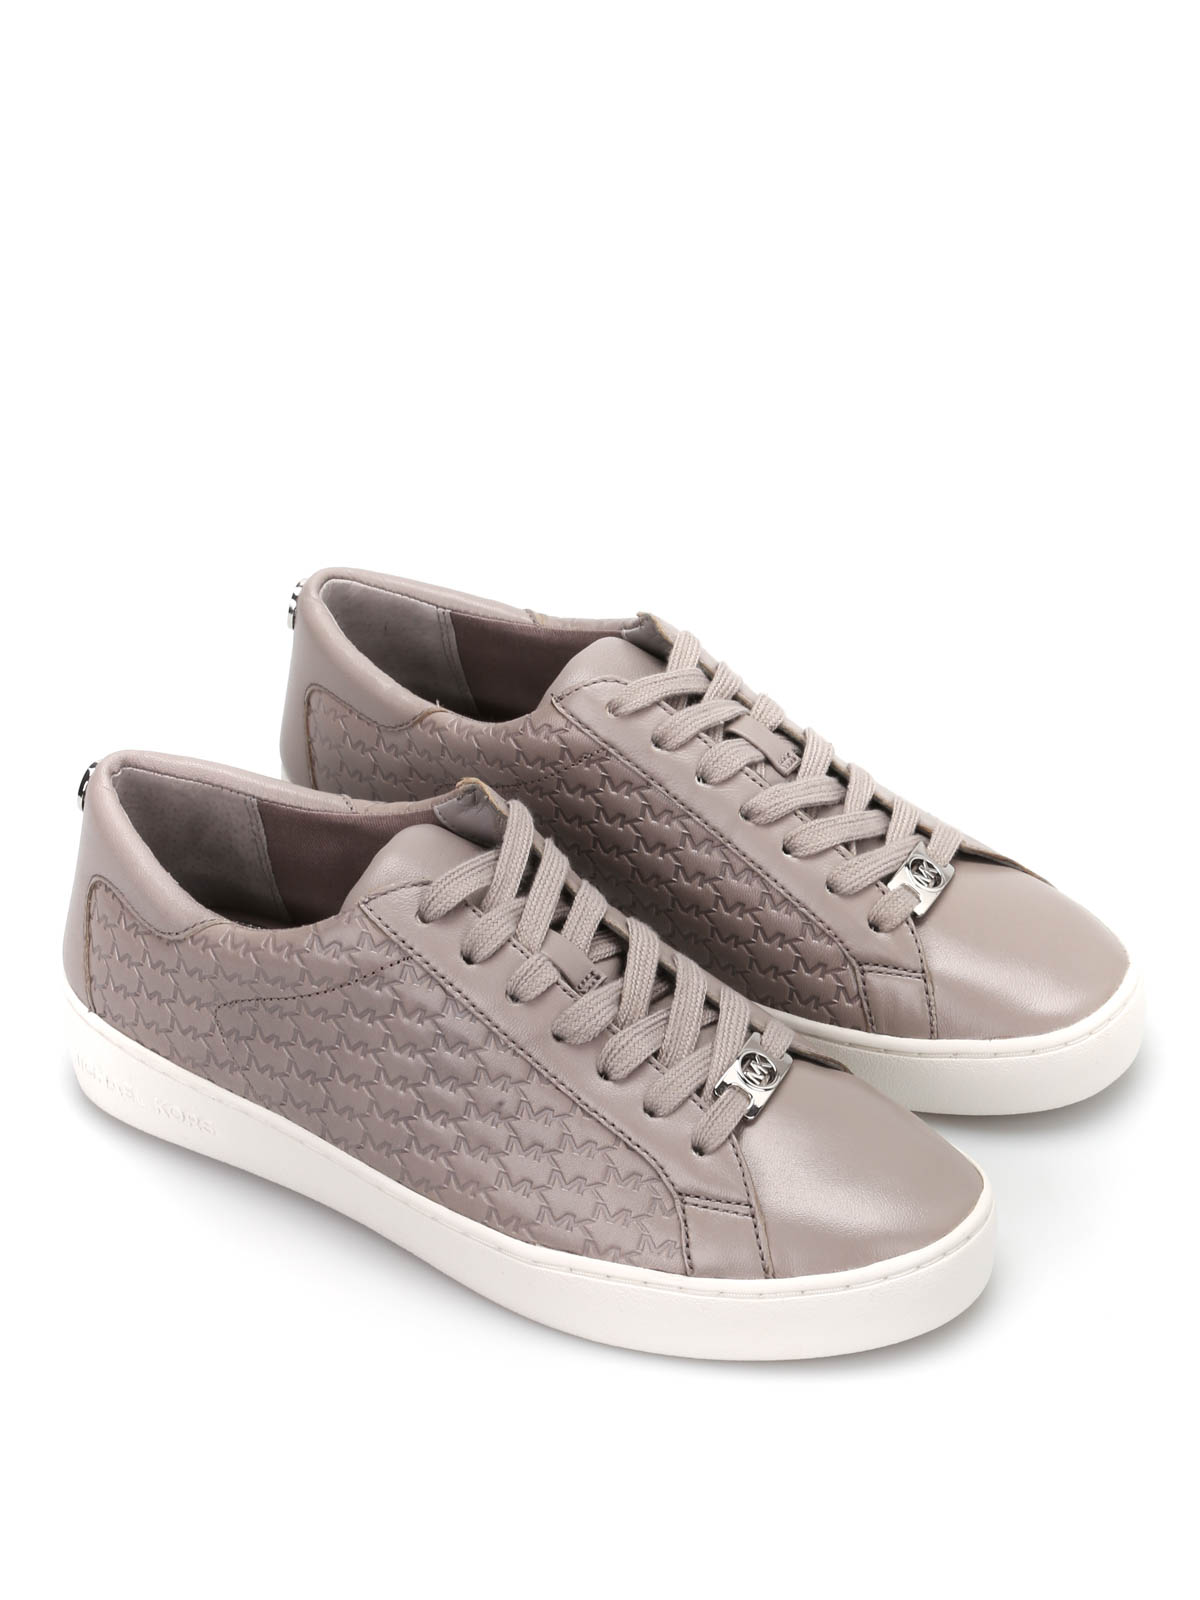 0fc21574ea0fe Michael Kors - Colby leather sneakers - trainers - 43R5COFP2L081